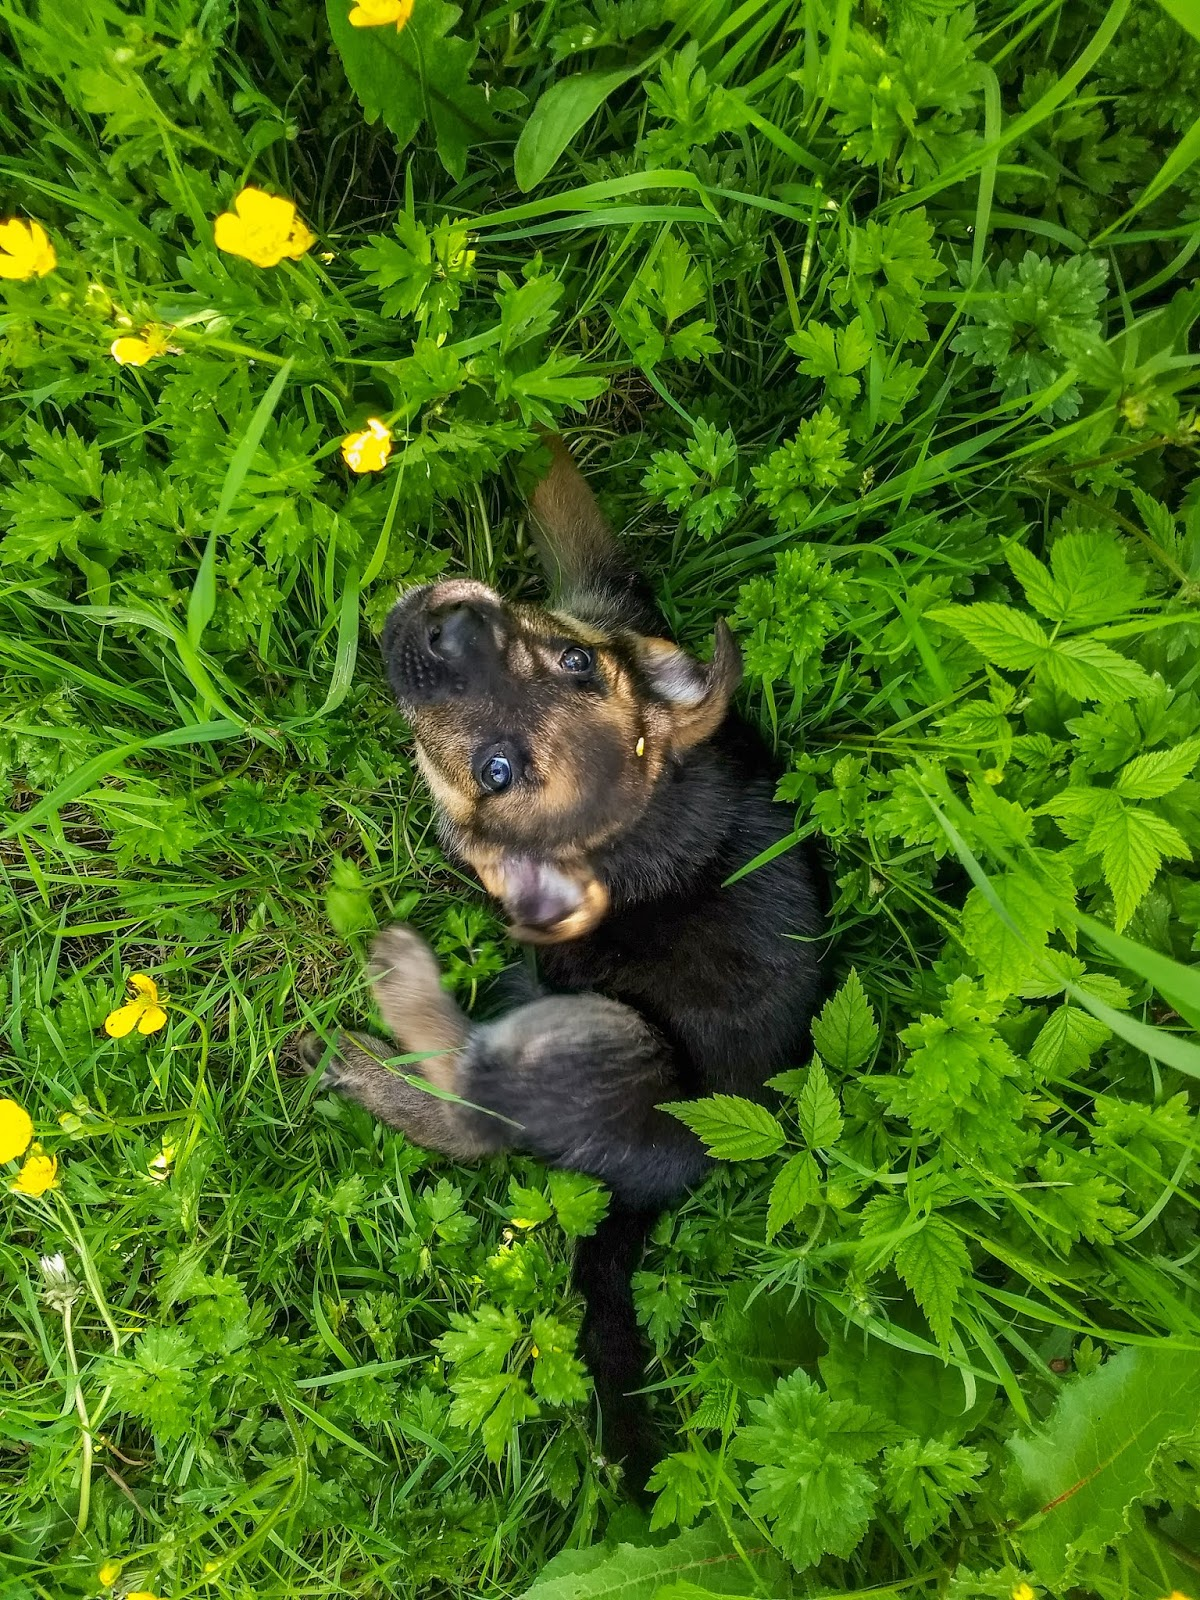 A German Shepherd puppy sits in the grass looking up at the camera.